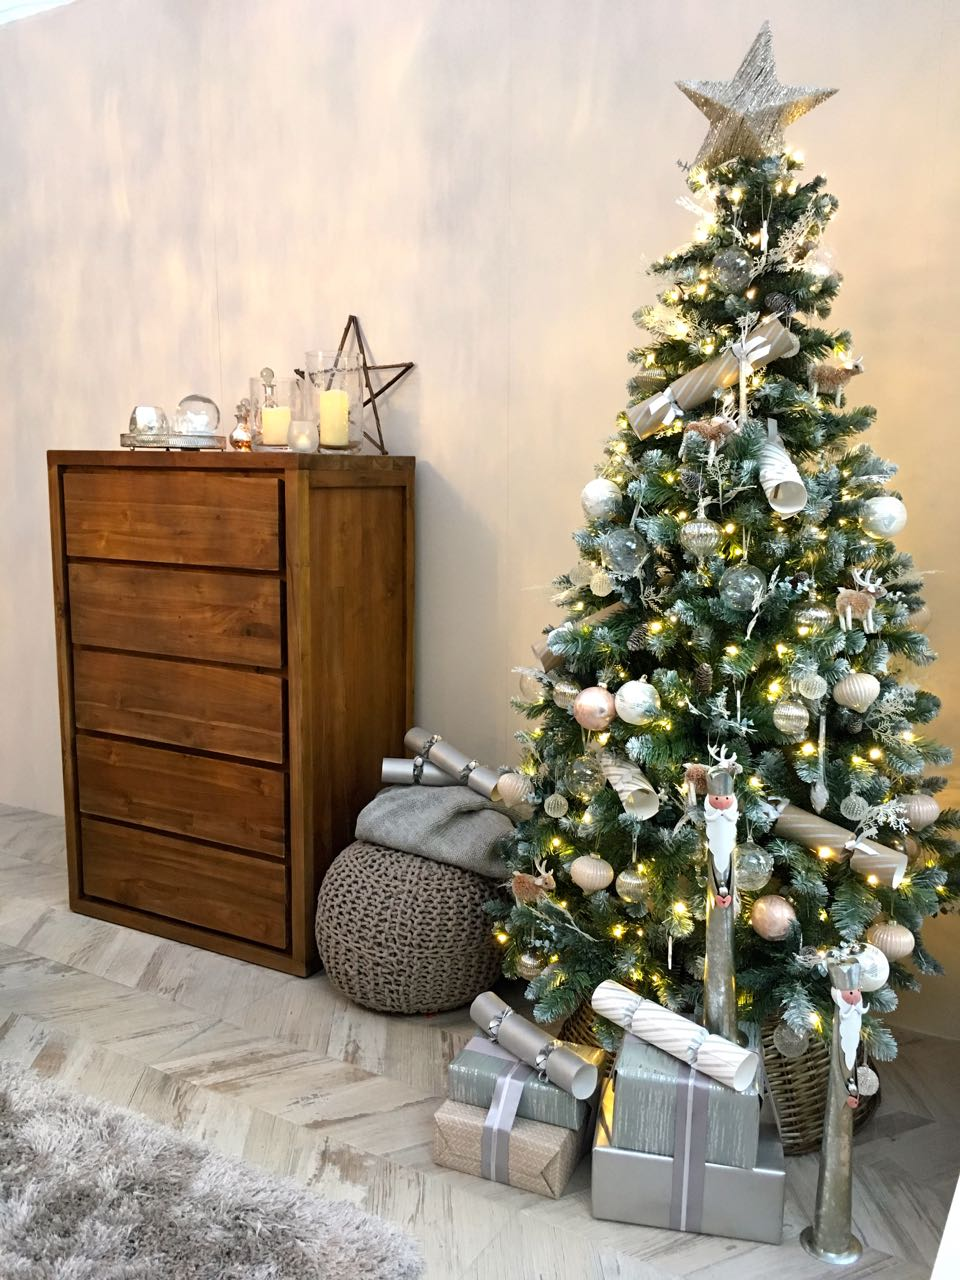 A tallboy and a Christmas tree too  in this room set at the Ideal Home Show at Christmas